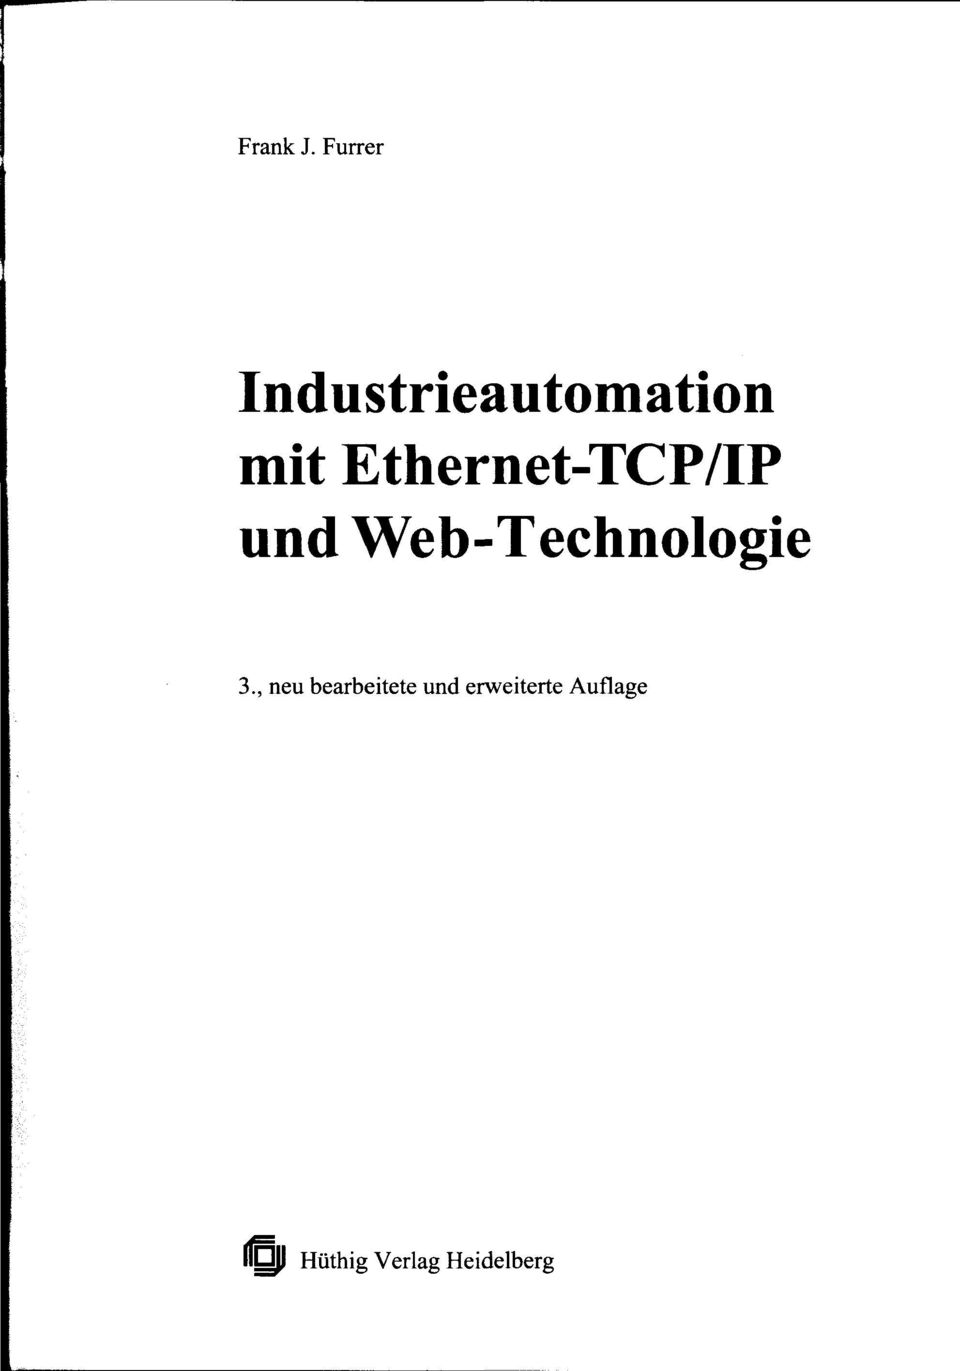 Ethernet-TCP/IP und Web-Technologie